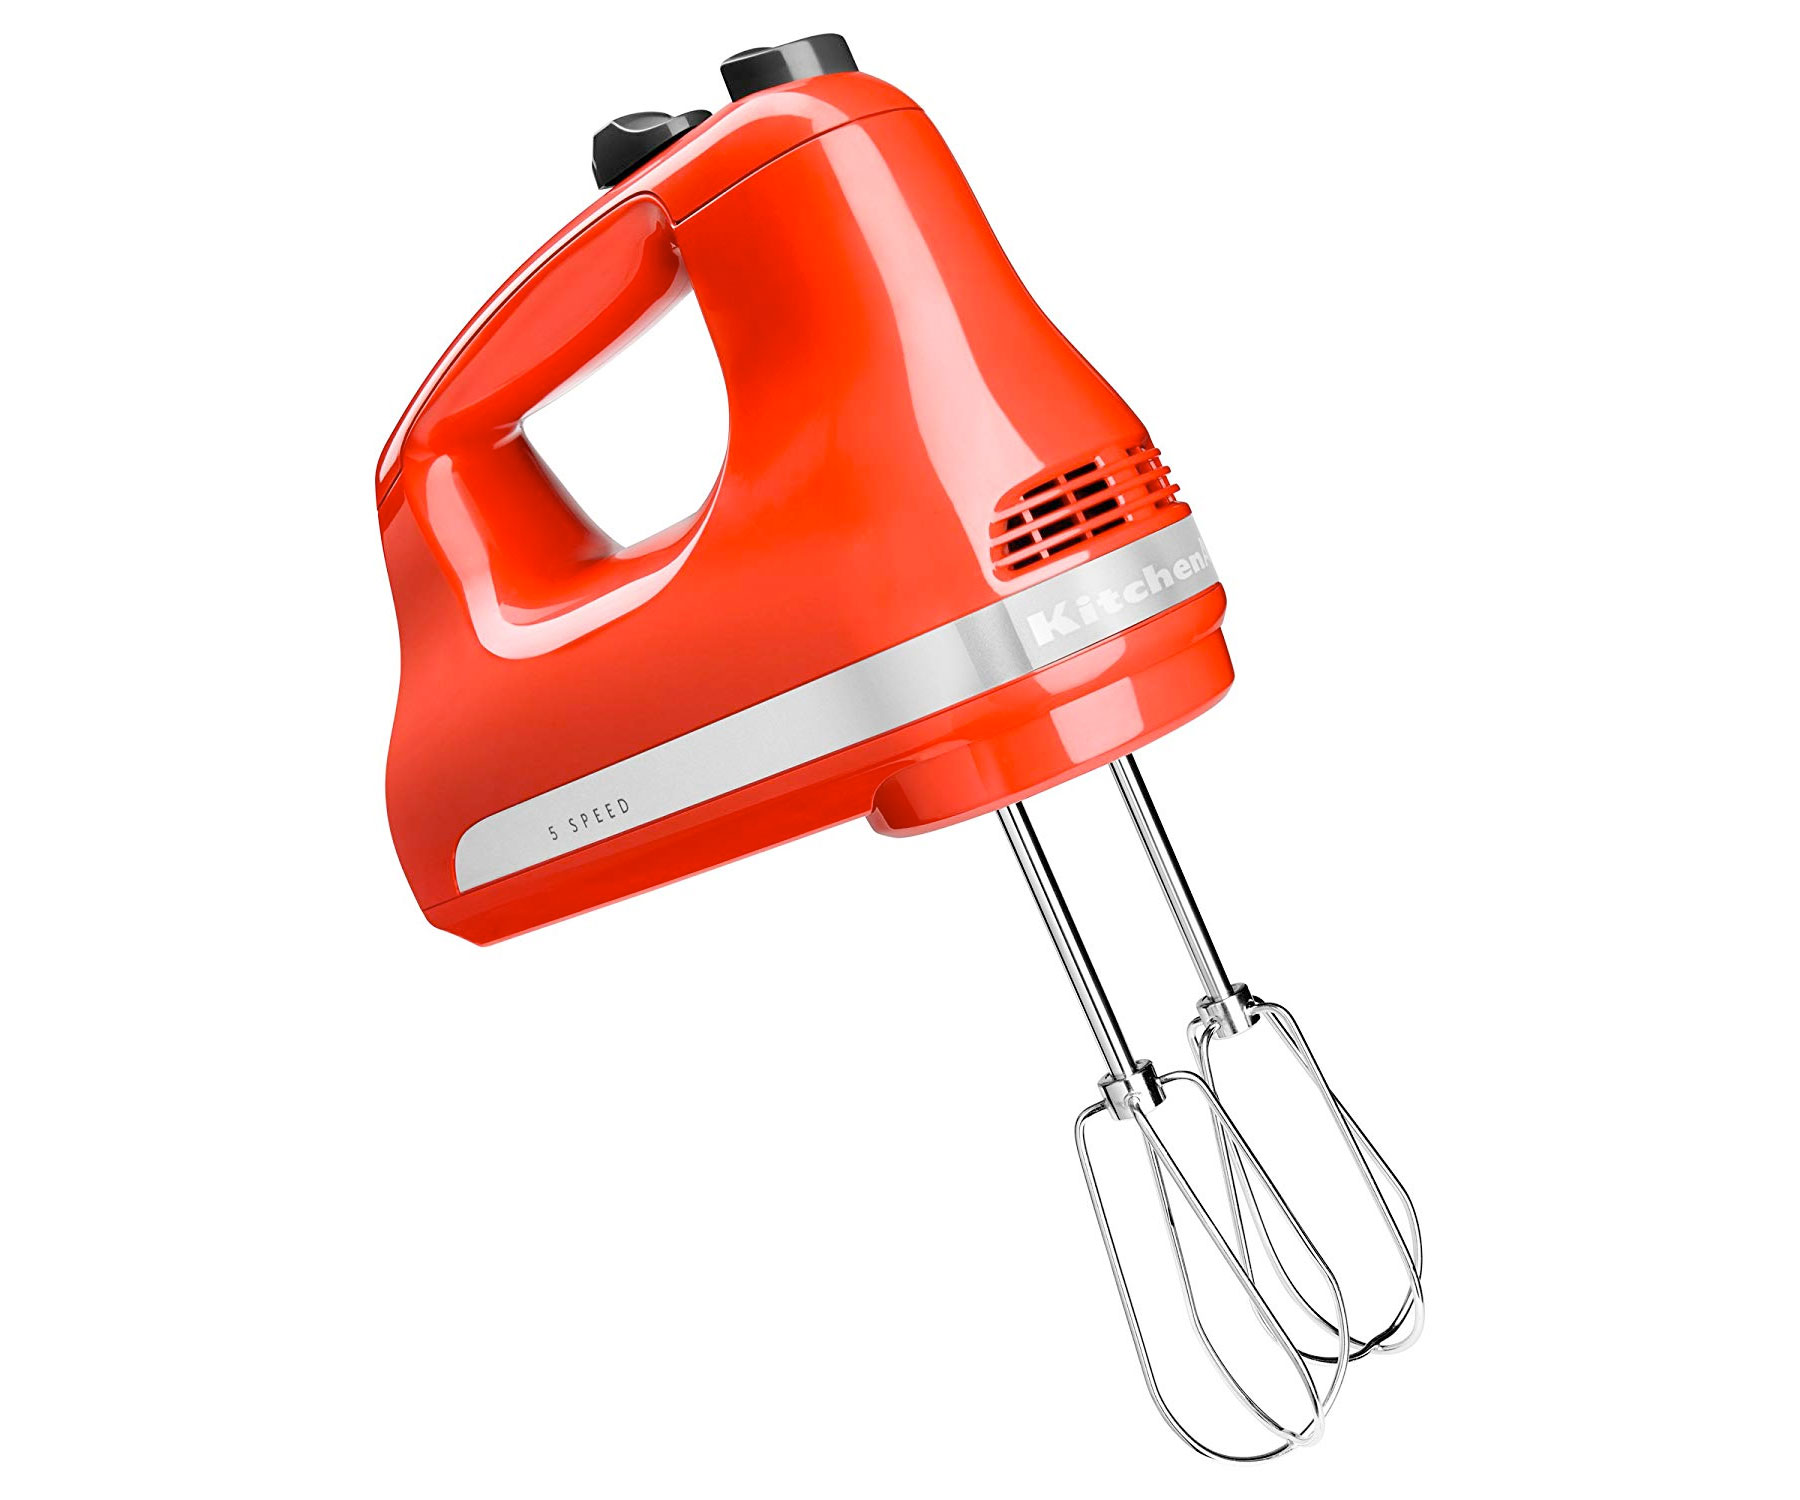 Amazon:KitchenAid 5-Speed Hand Mixer只賣$39.99